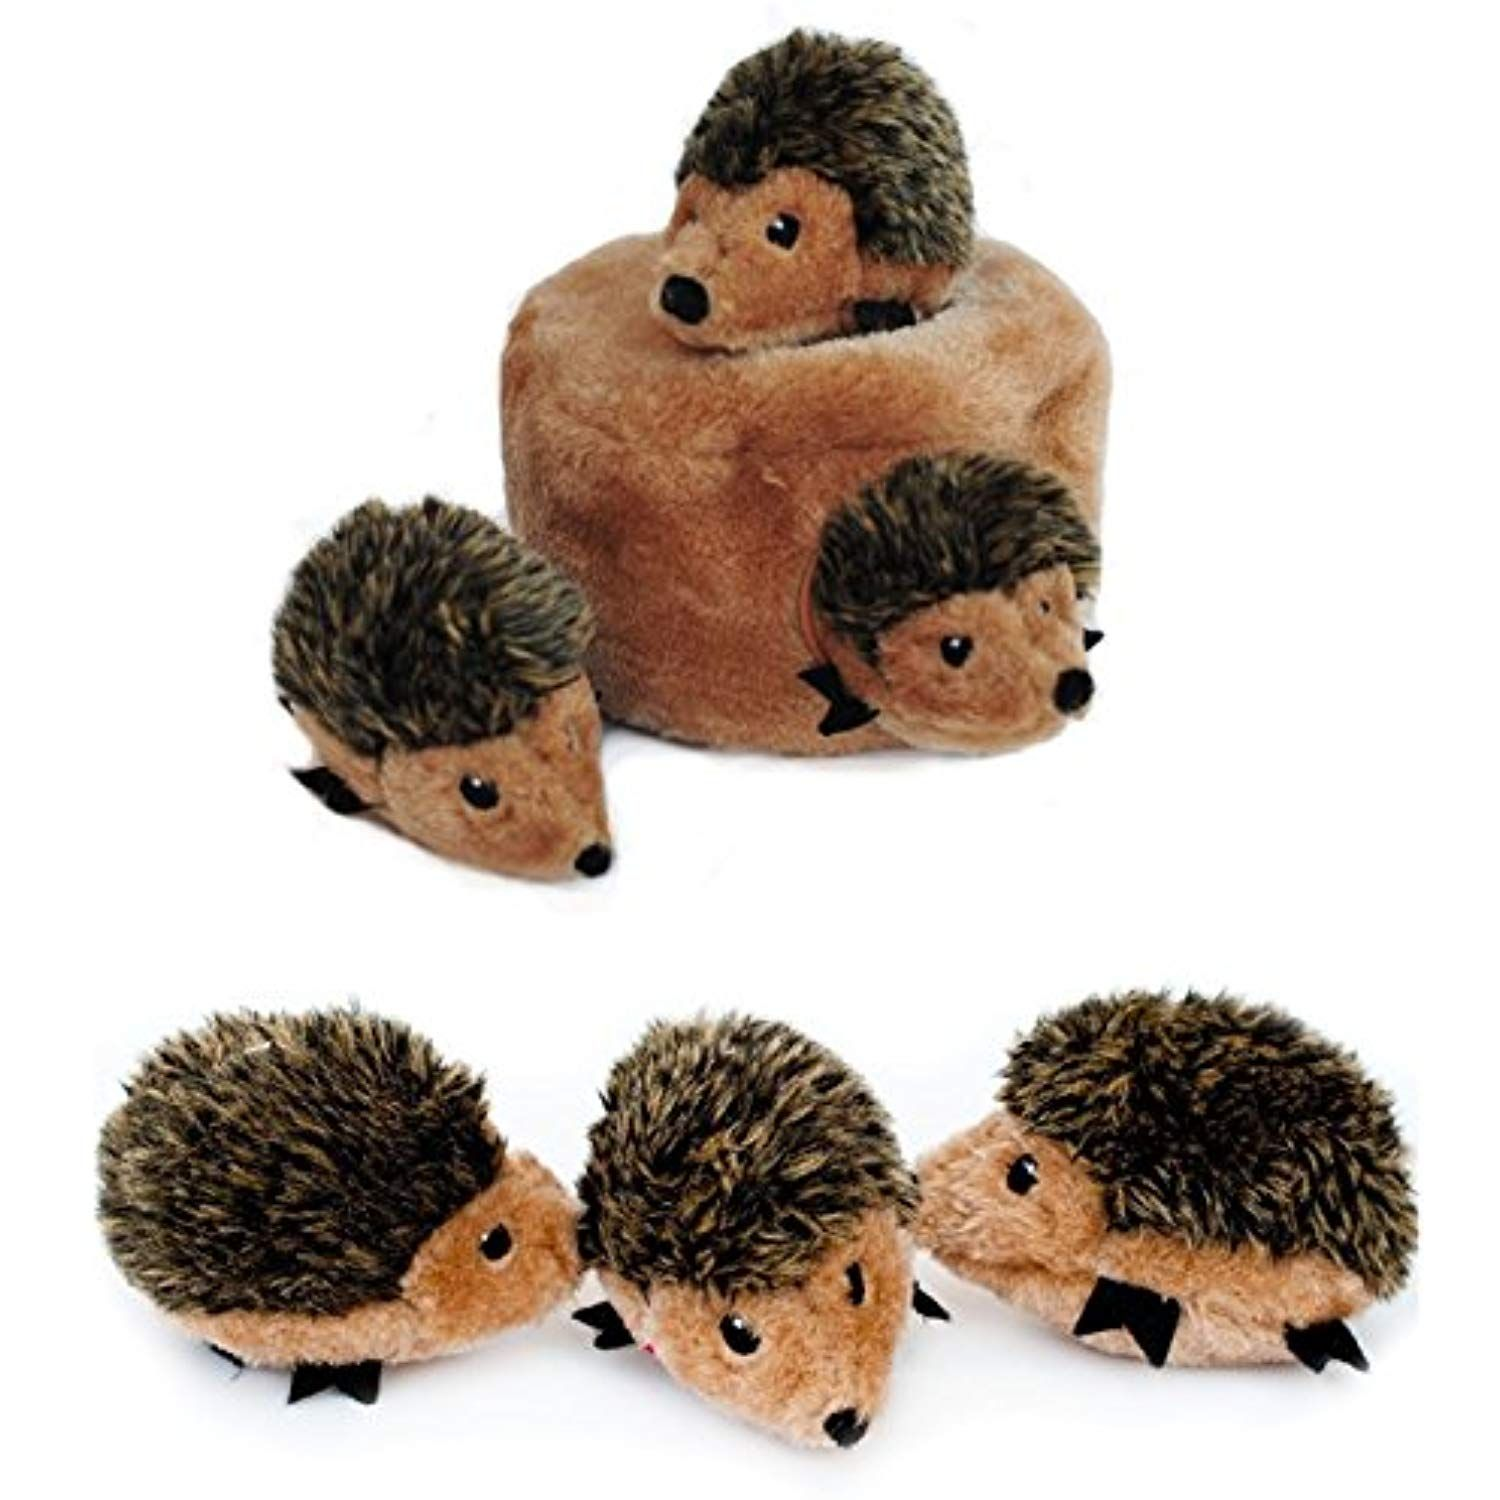 Zippypaws Hedgehog Den With 3 Hedgehogs Hide And Seek Plush Dog